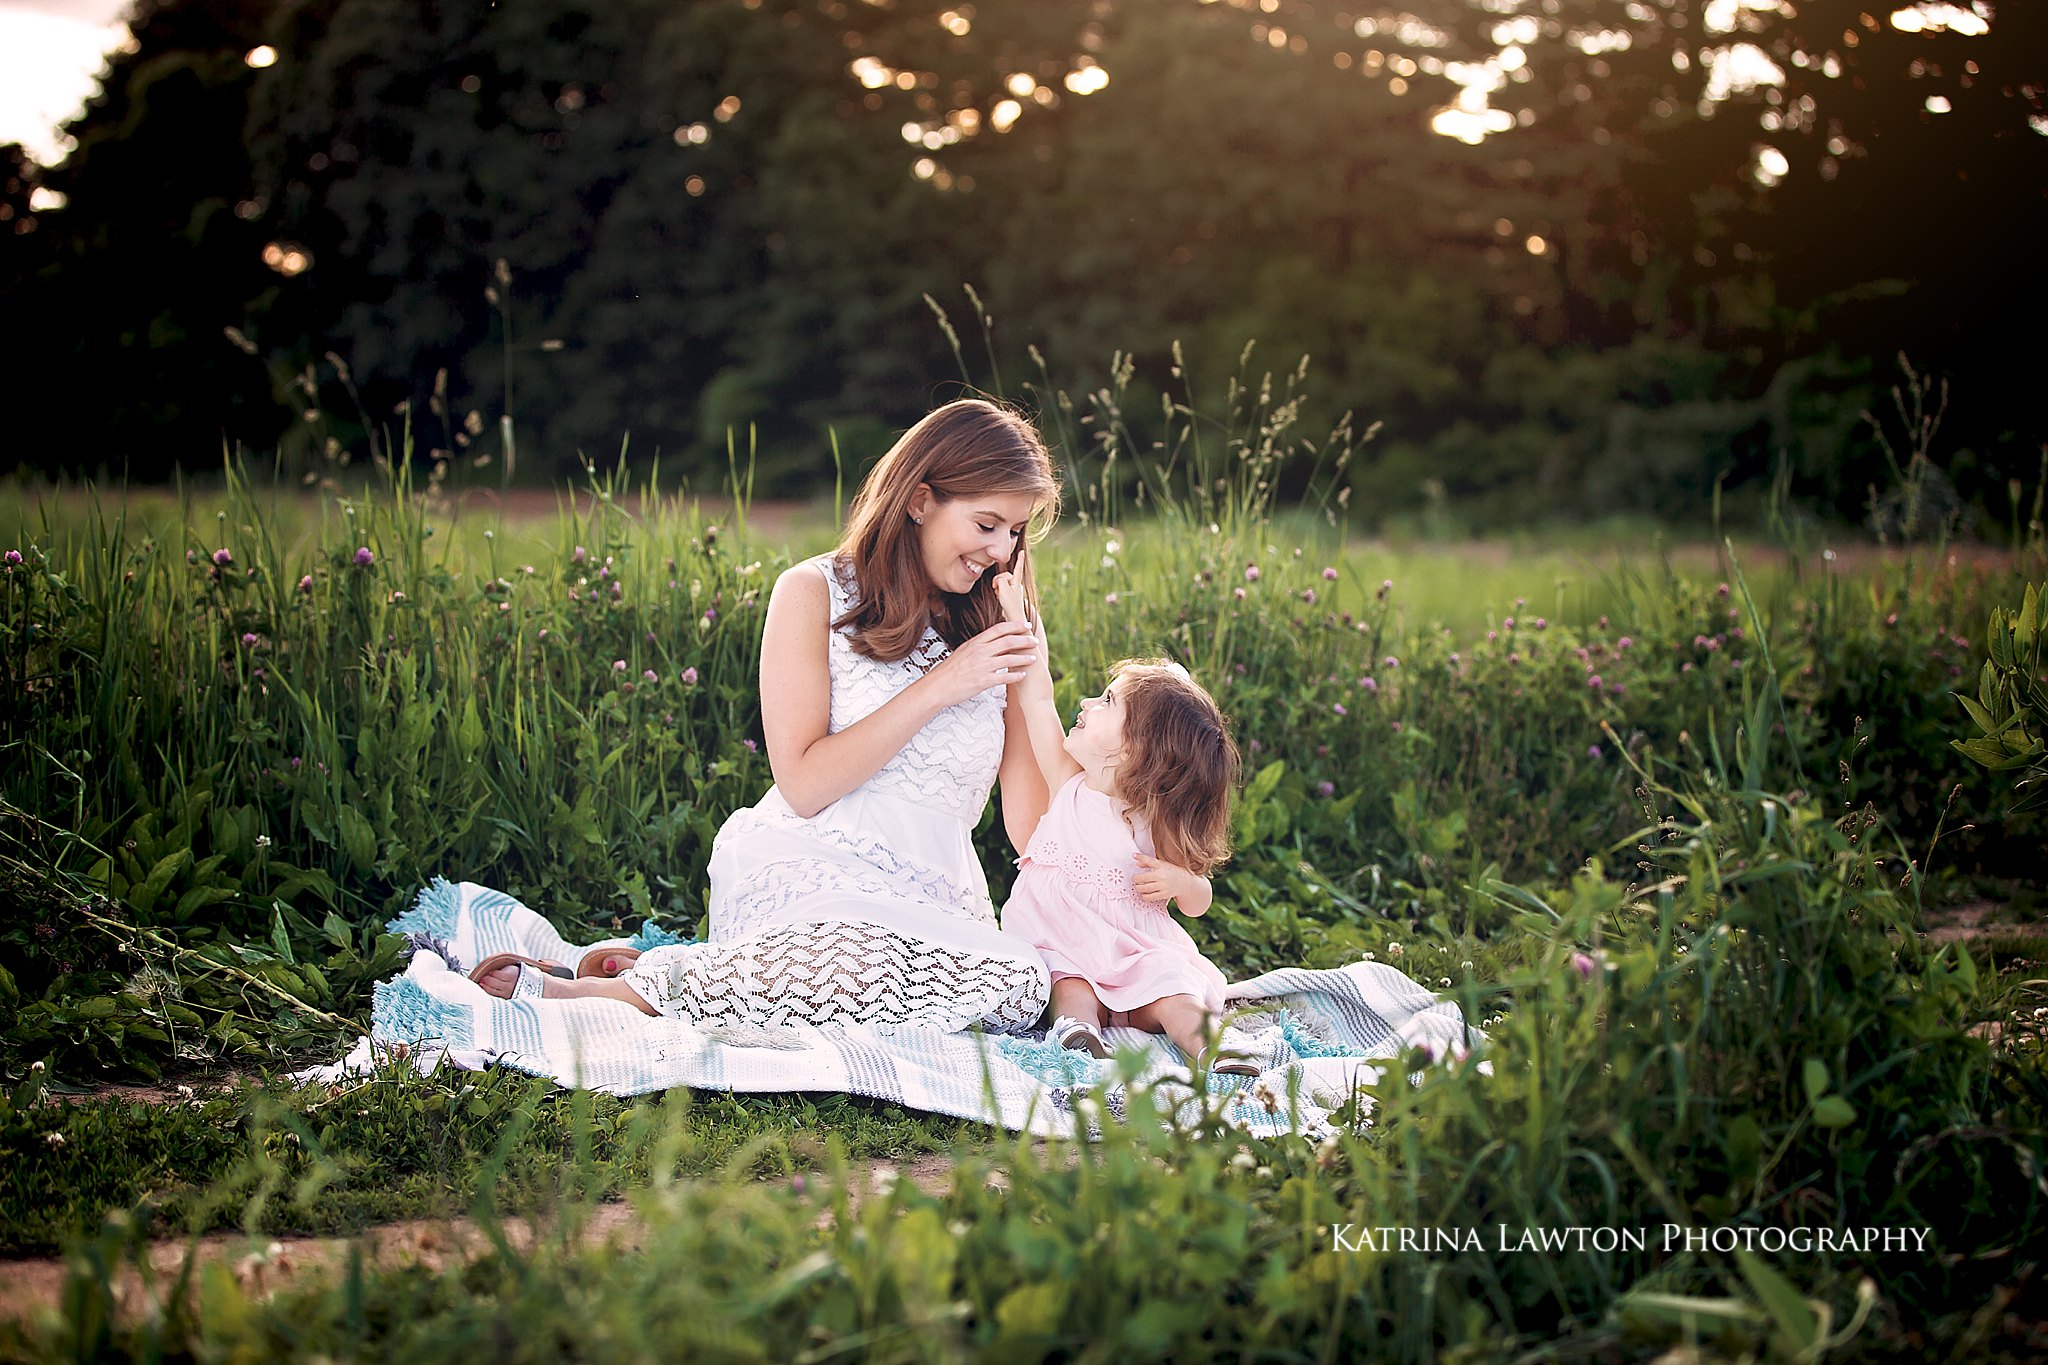 Summer Family Session, Massachusetts Photographer, Katrina Lawton Photography